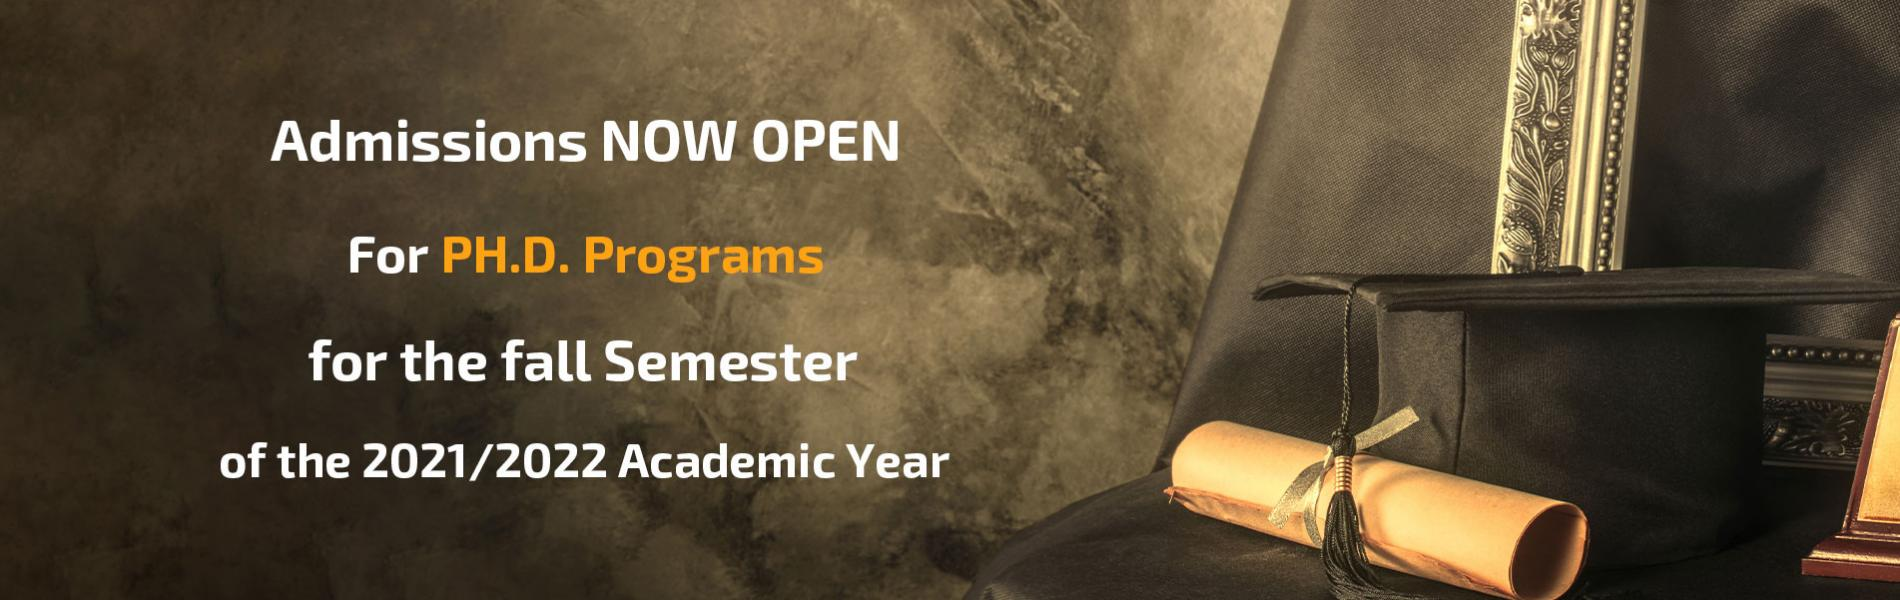 Admission Applications are now being Accepted to the Ph.D. Programs for Fall Semester of Academic Ye